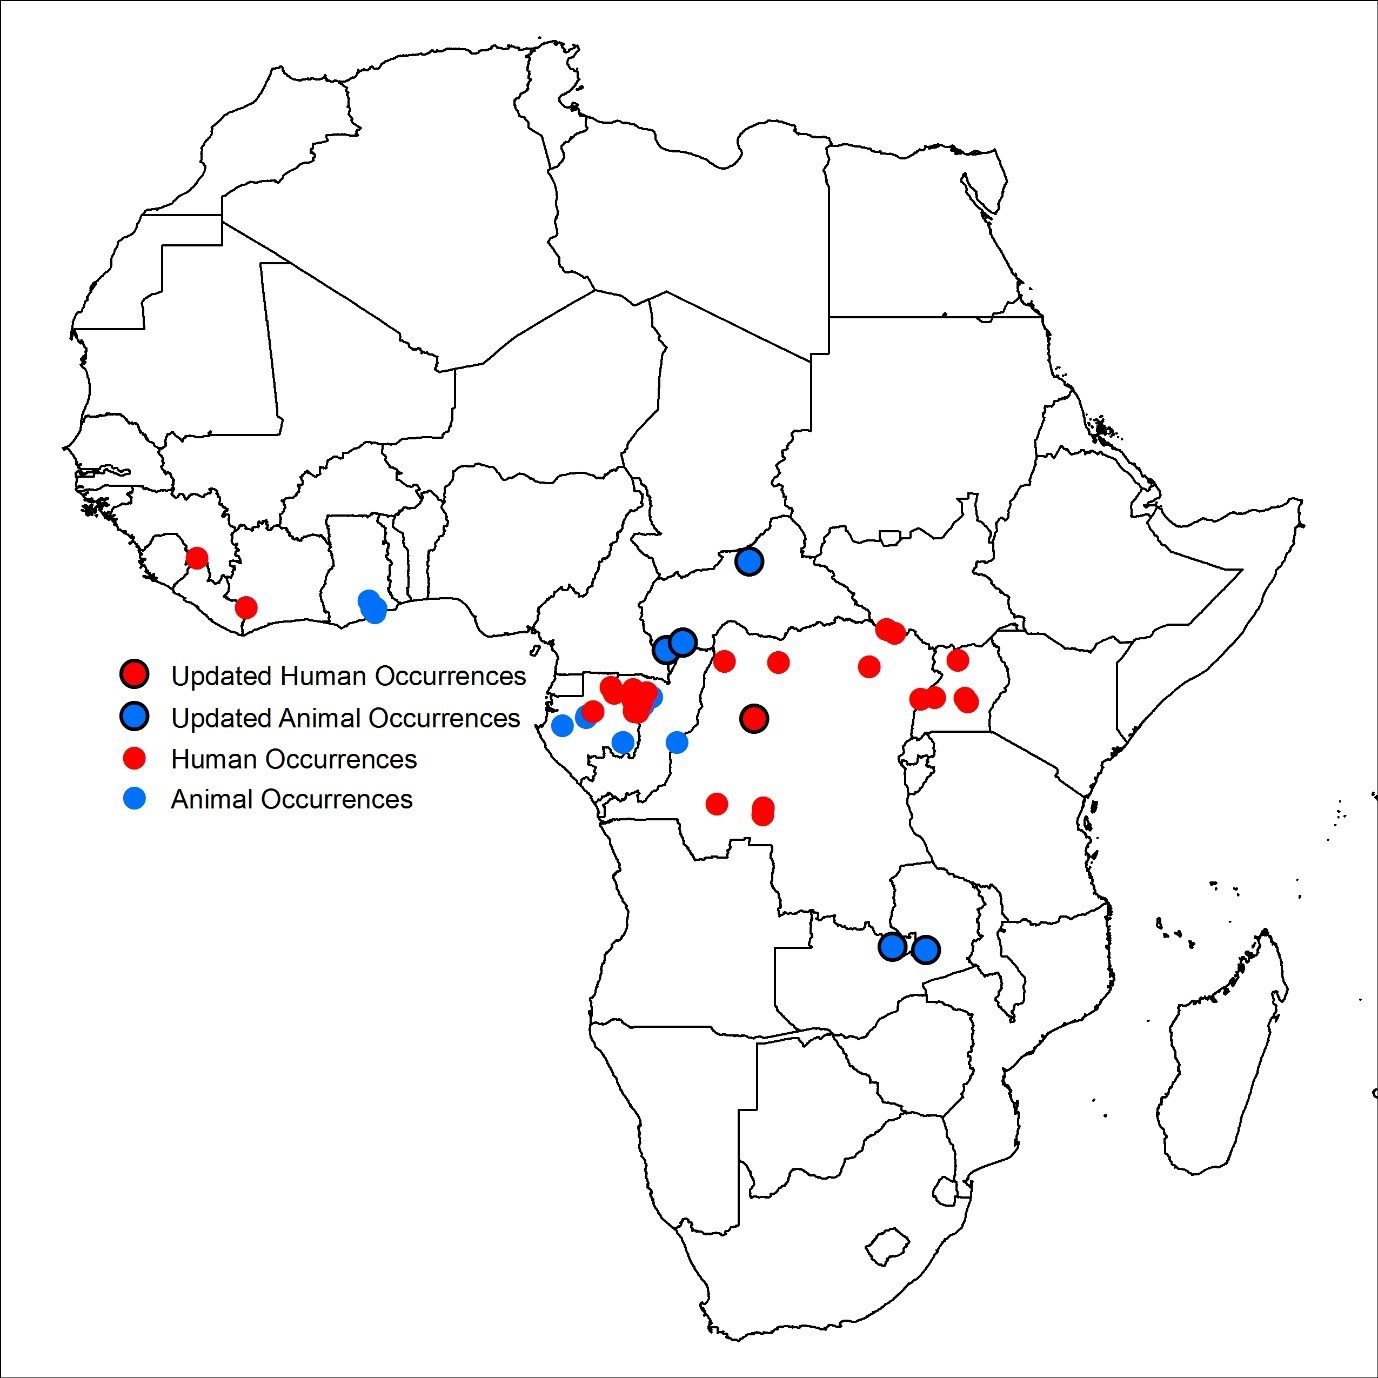 Updates to the zoonotic niche map of Ebola virus disease